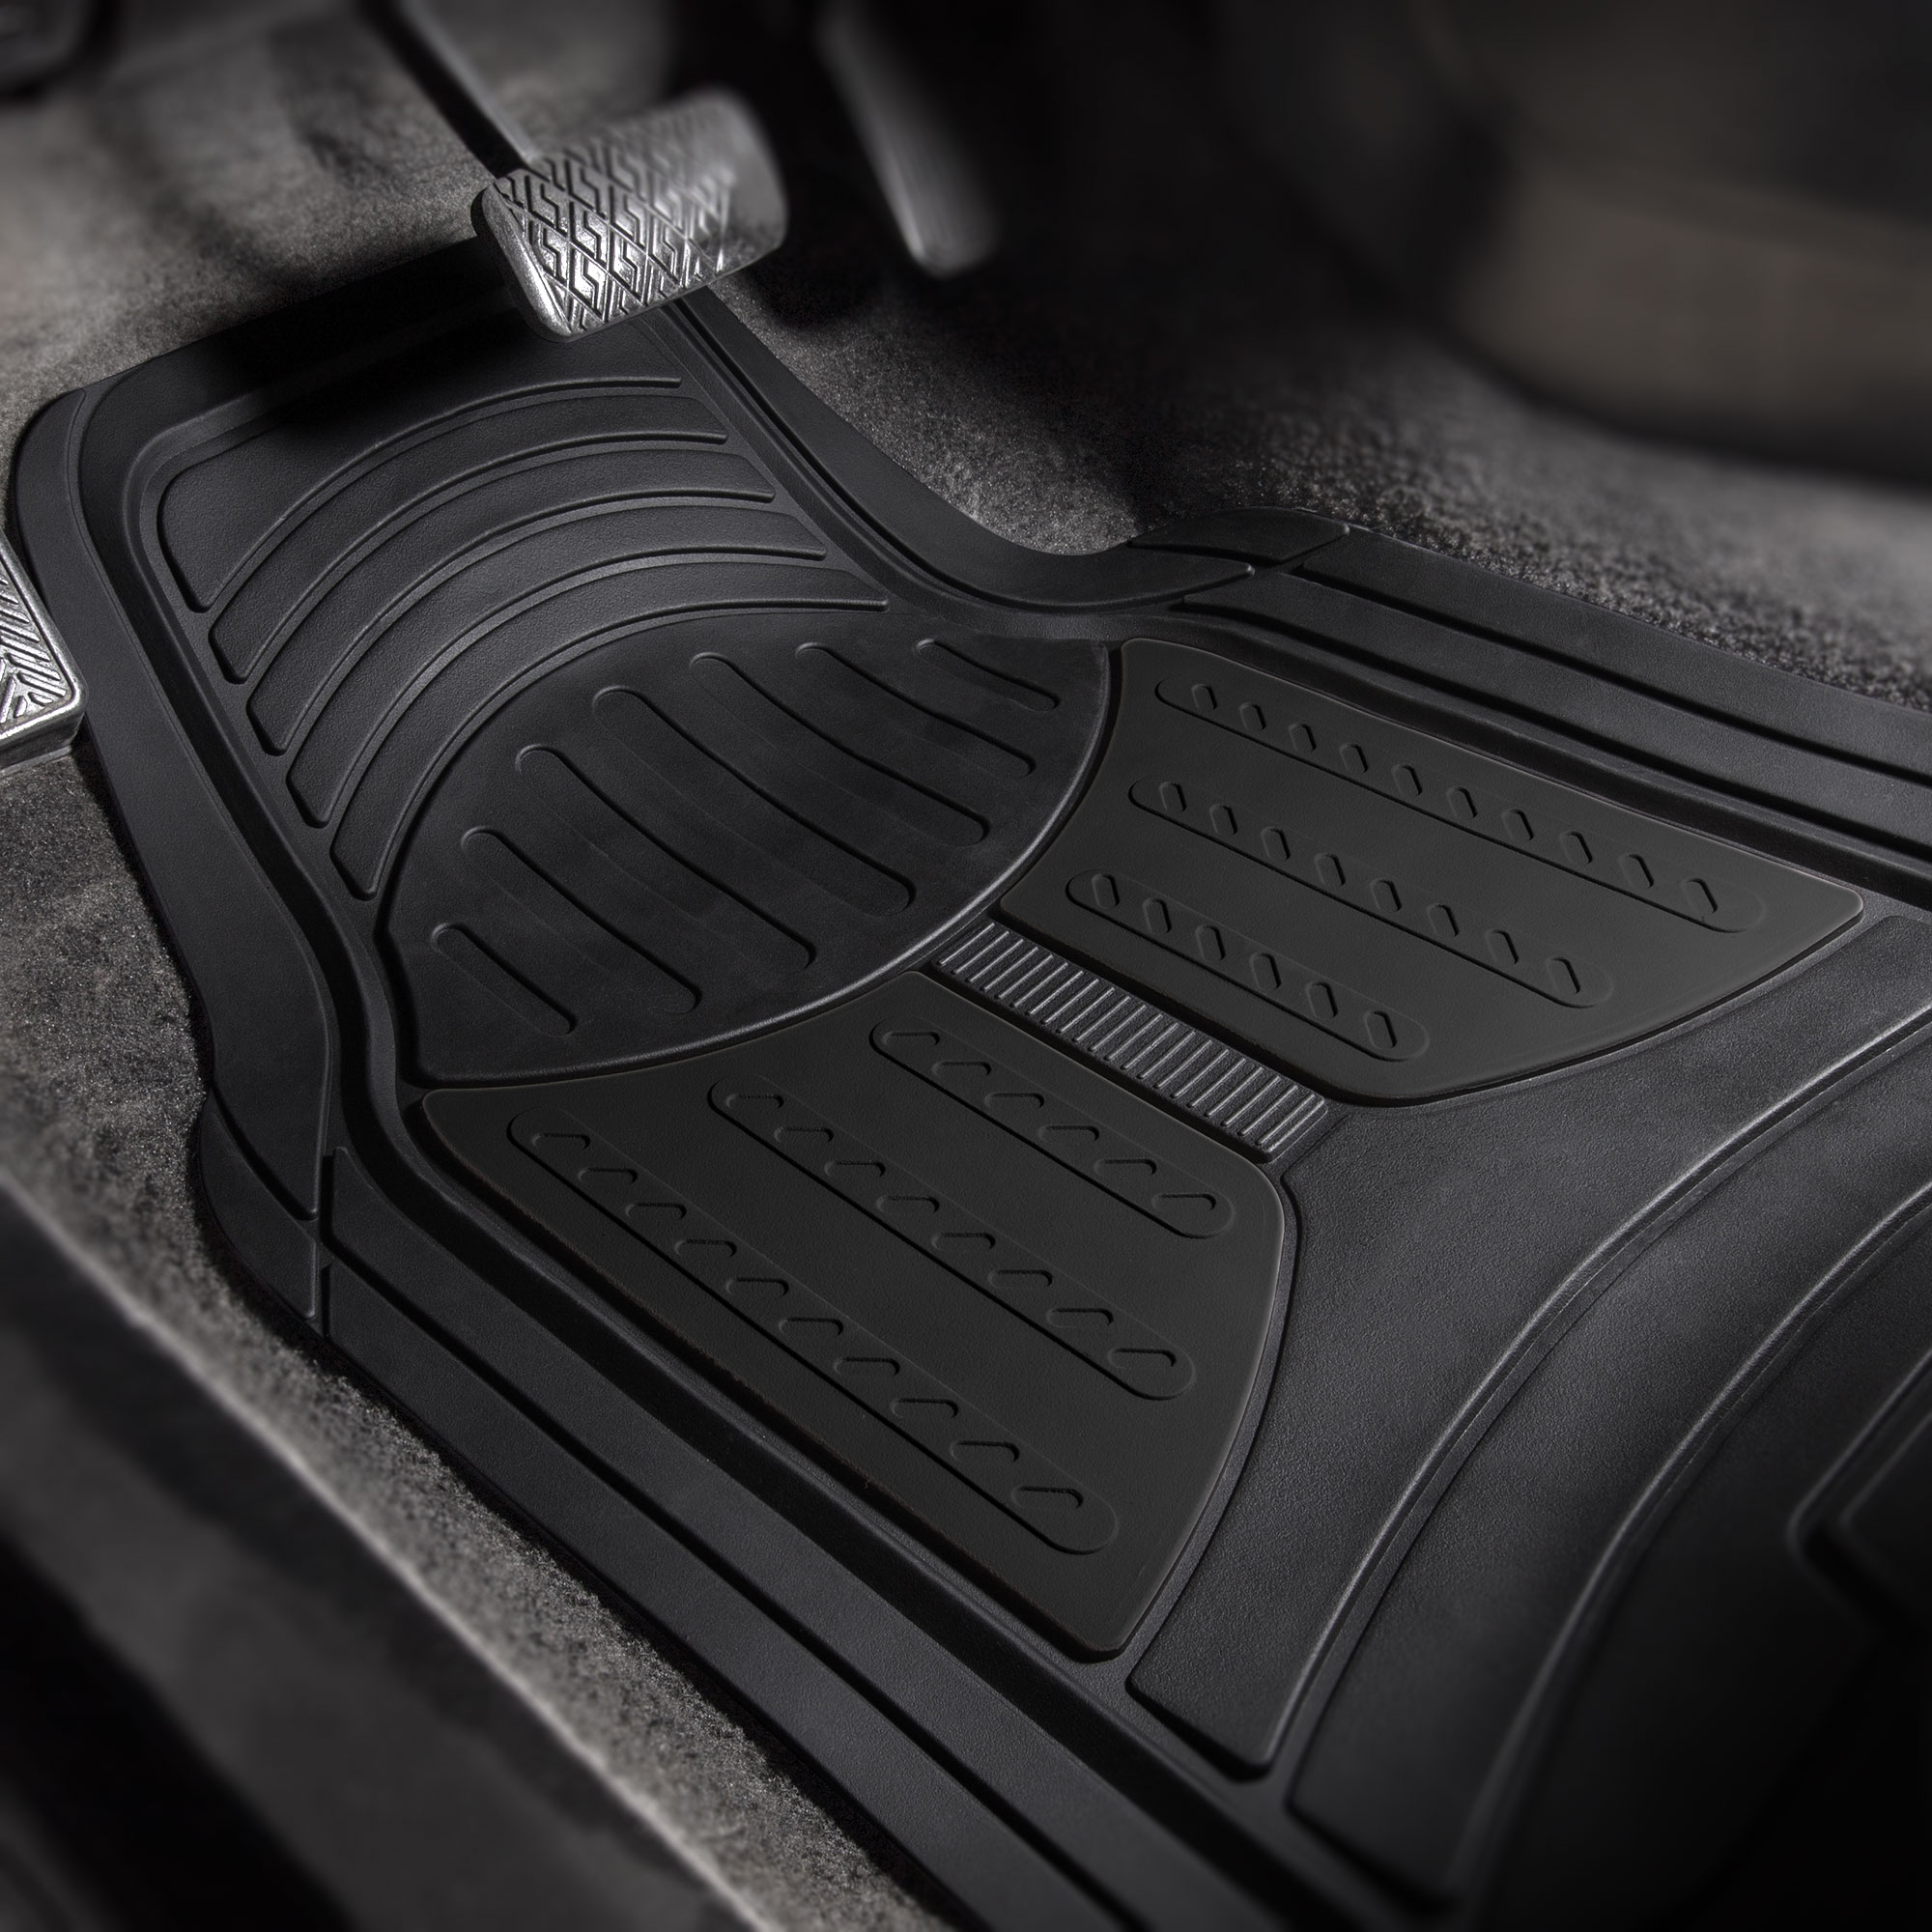 Car-Floor-Mats-for-All-Weather-Rubber-2-Tone-Design-4pc-Set-Heavy-Duty thumbnail 10